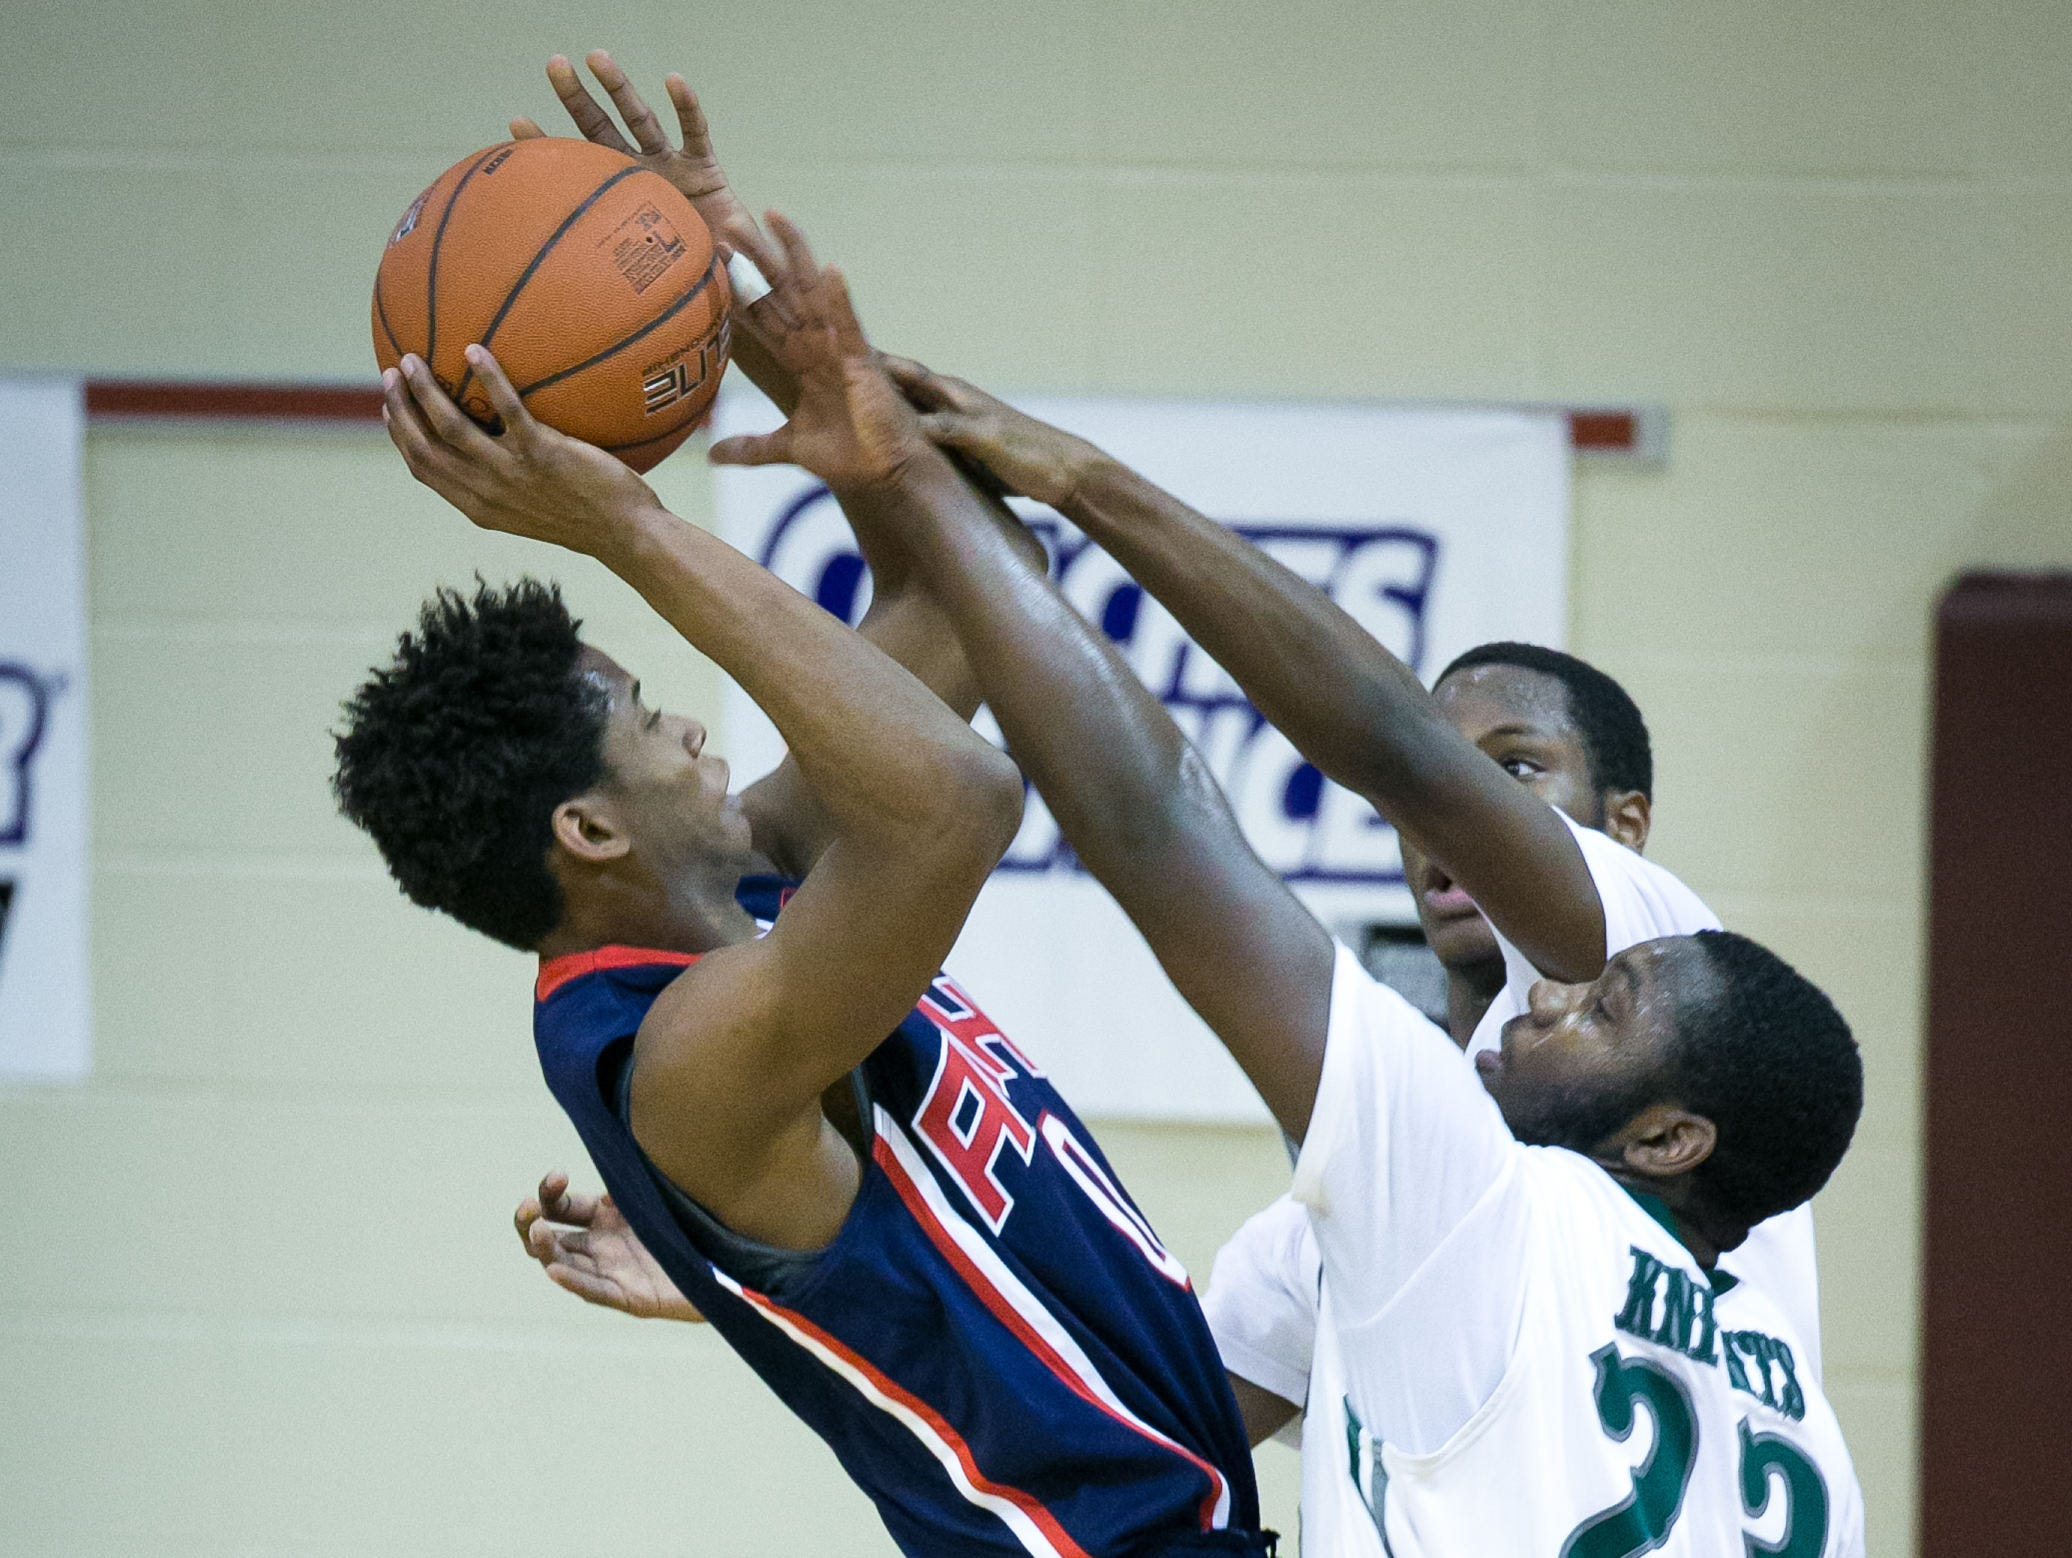 Yvens Monfluery (left) of American History gets blocked by two Mount Pleasant players late in the game.